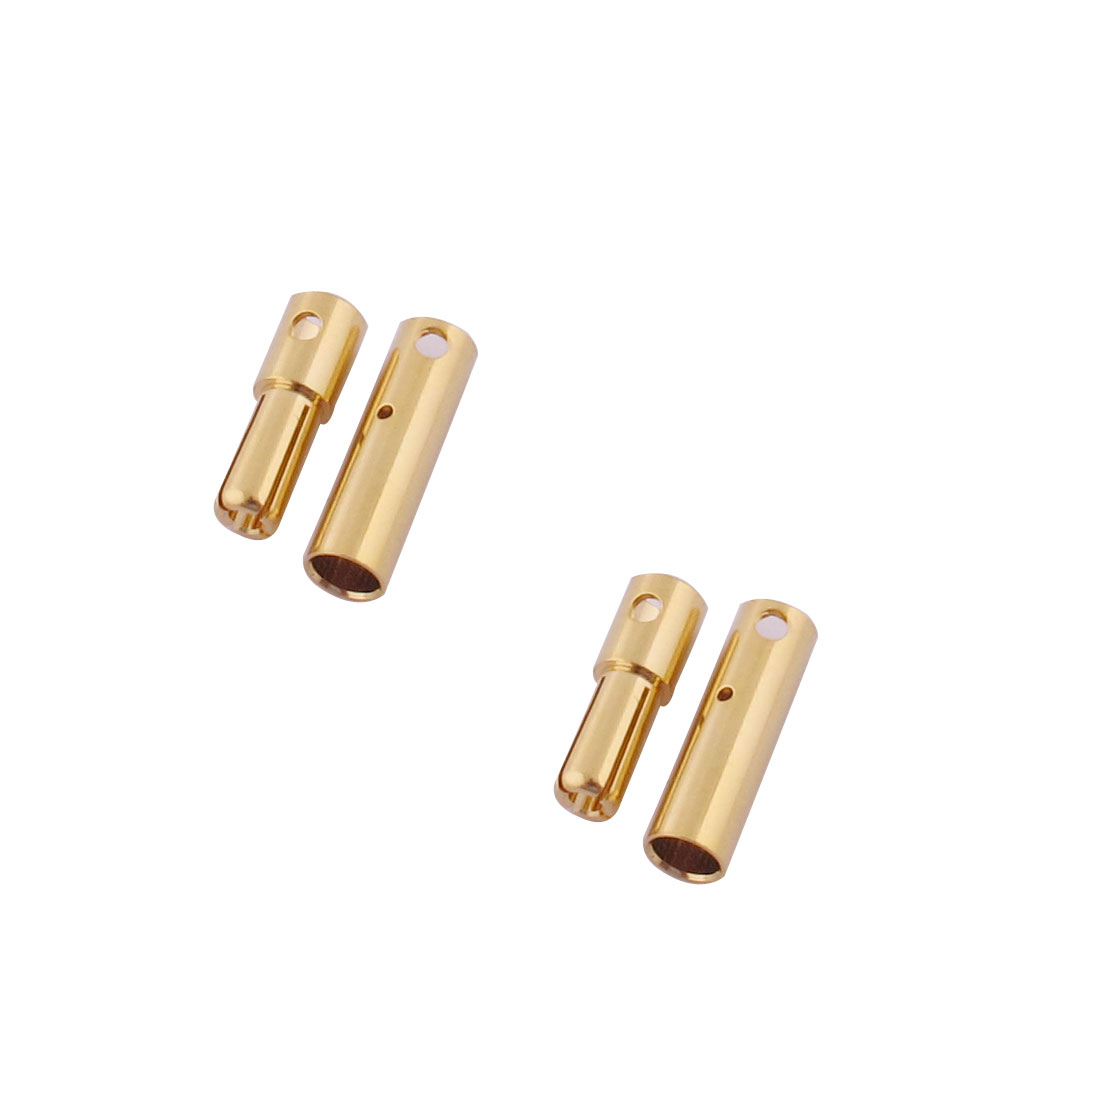 ESC RC LiPo Battery 4mm Male Female Banana Connector Gold Tone 2 Pairs